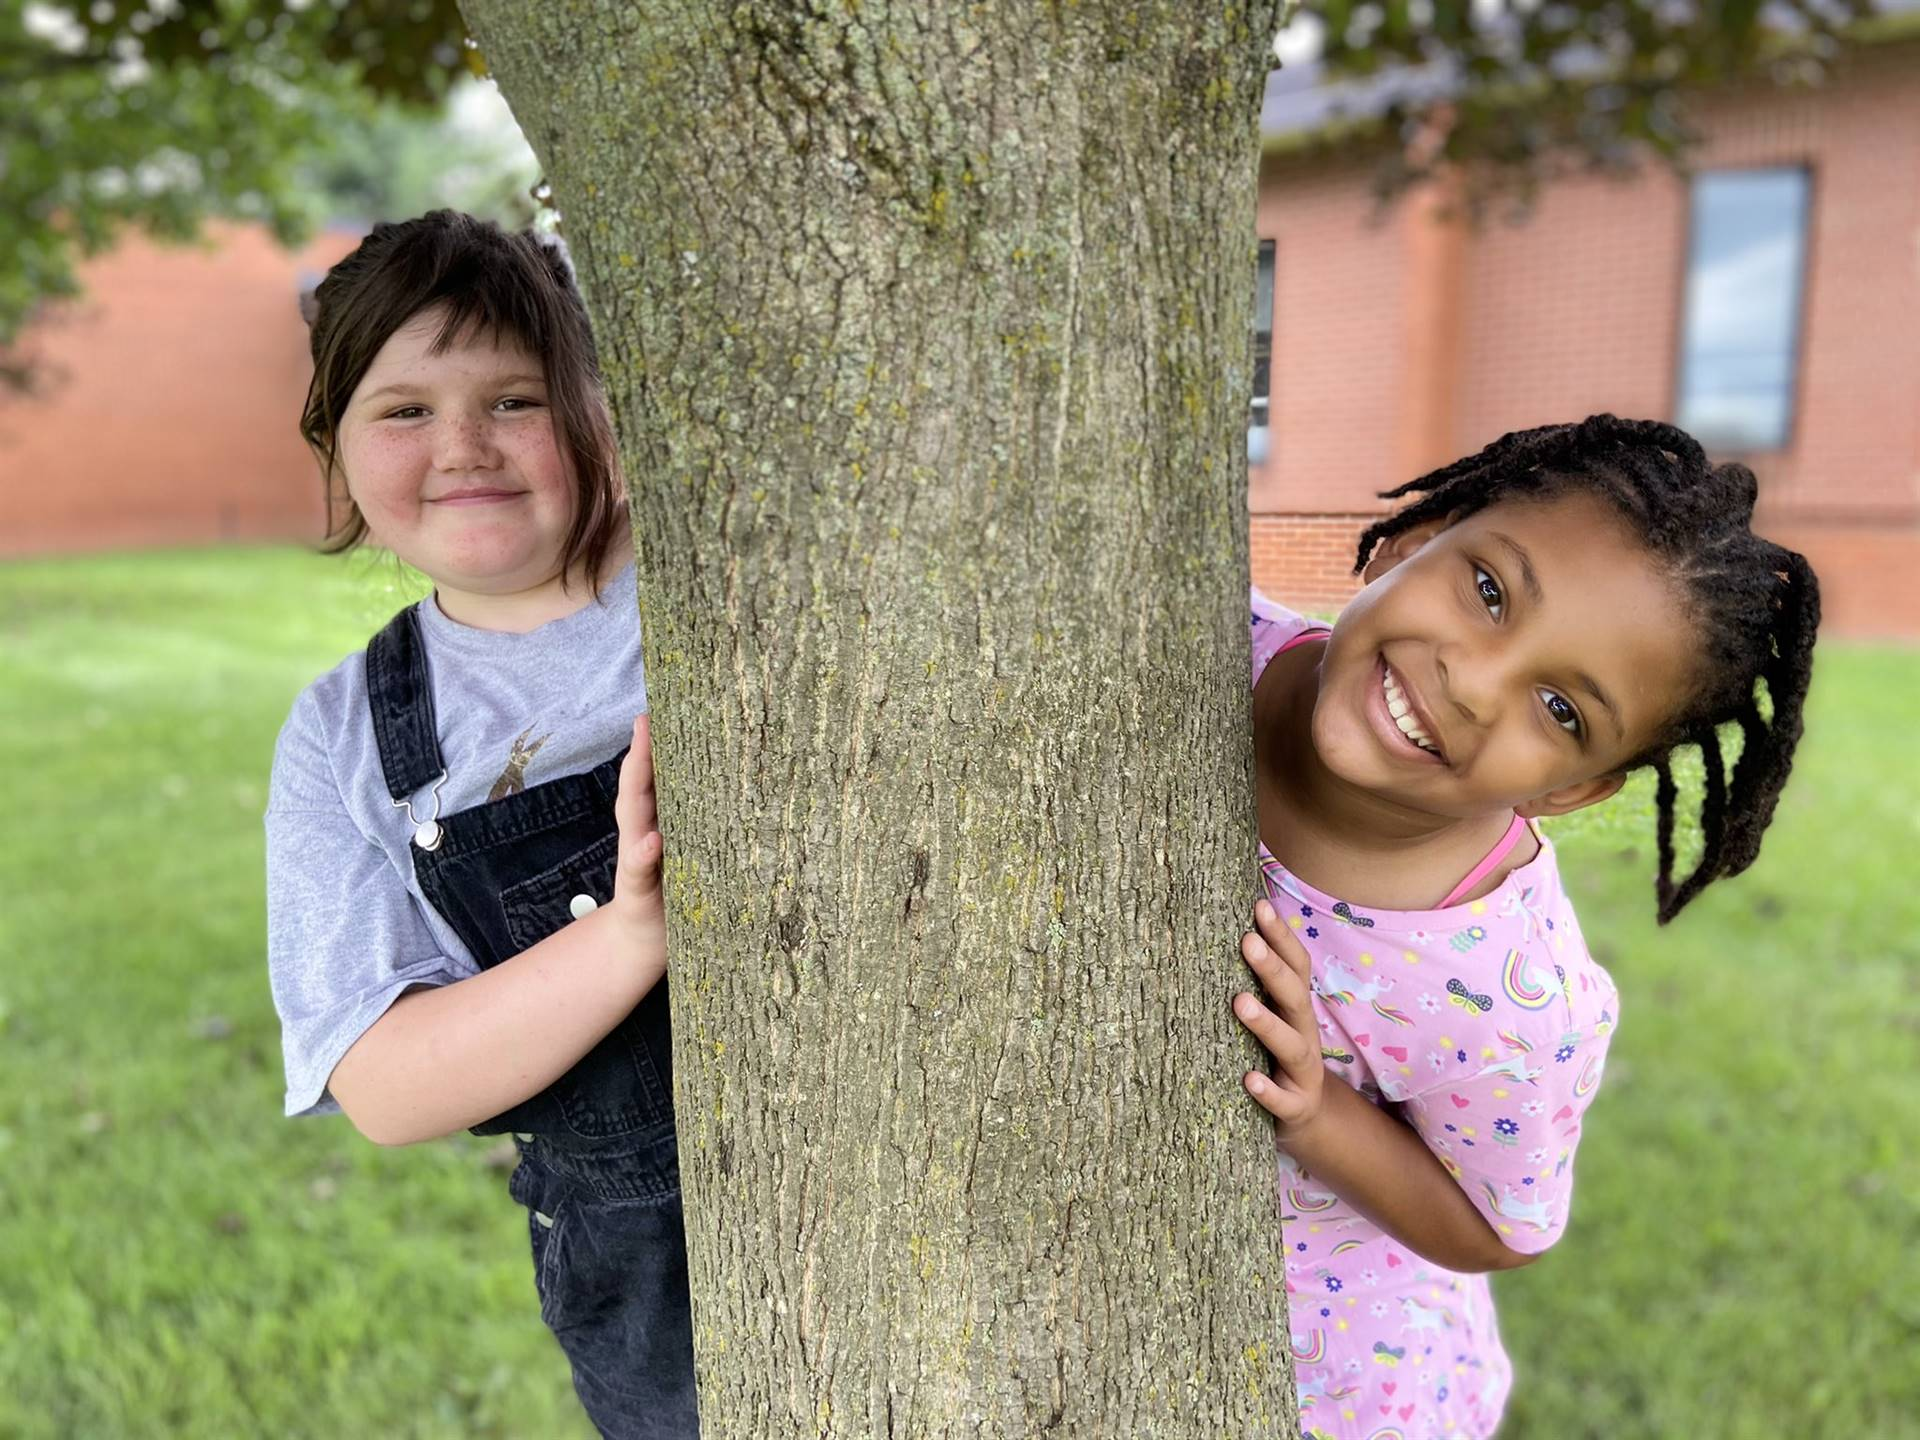 Photo 1:  2 Munson students each on one side of a tree outside at recess smiling for the camera